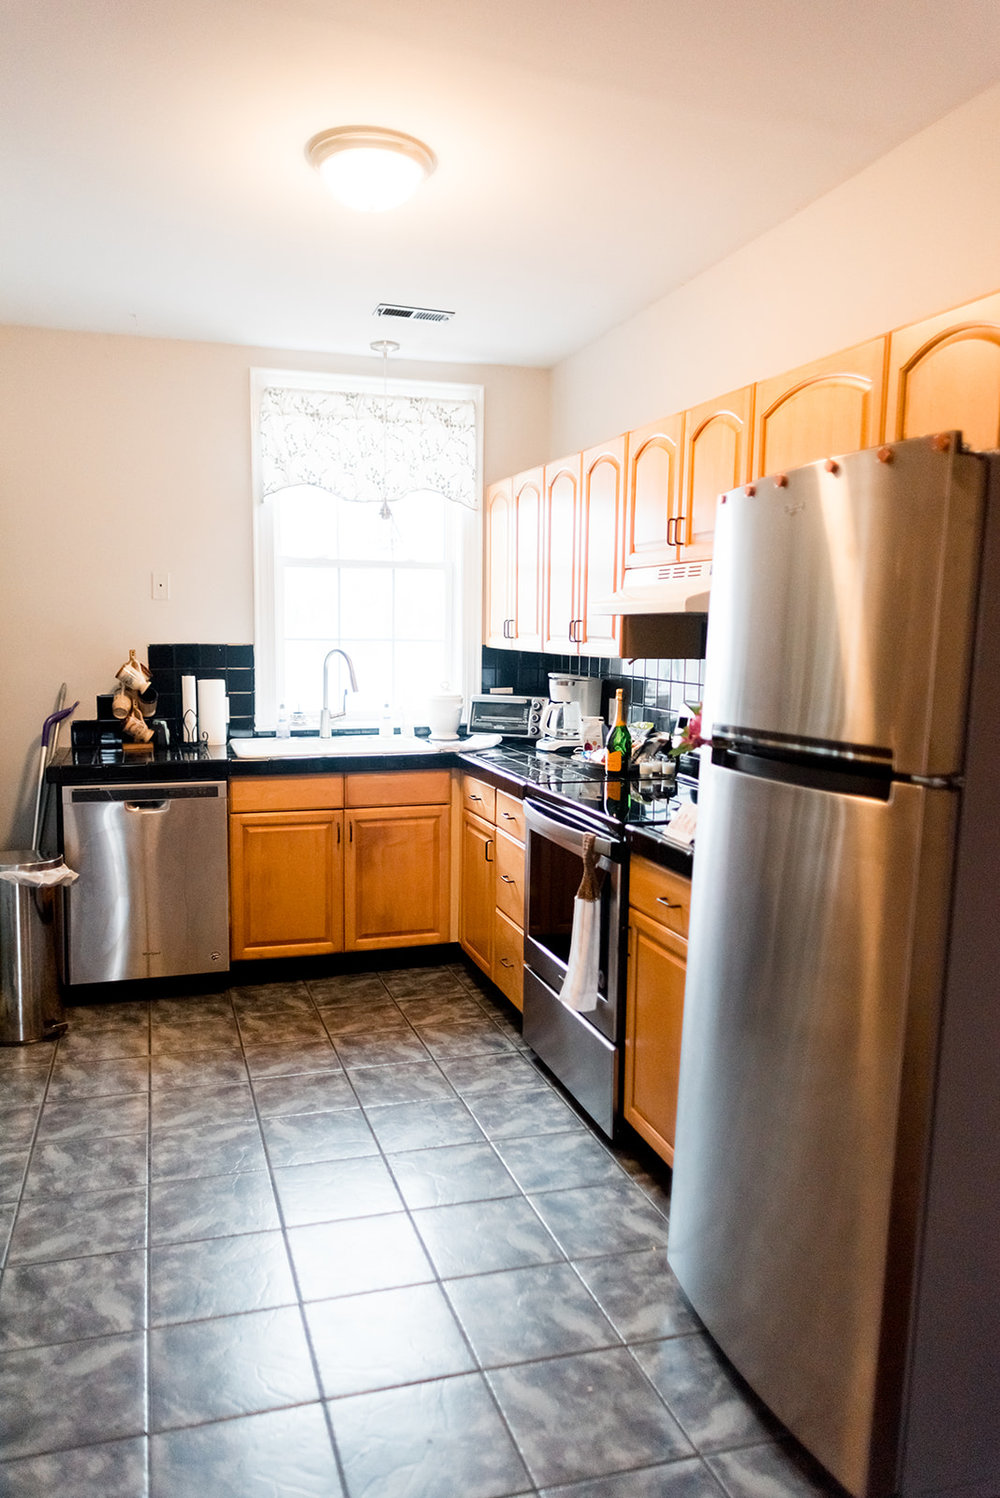 Full kitchen with brand new appliances. Gourmet snacks, waters, coffee, creamer, and all cookware/ plateware/ flatware. You just might find a surprise bottle in the fridge upon arrival.